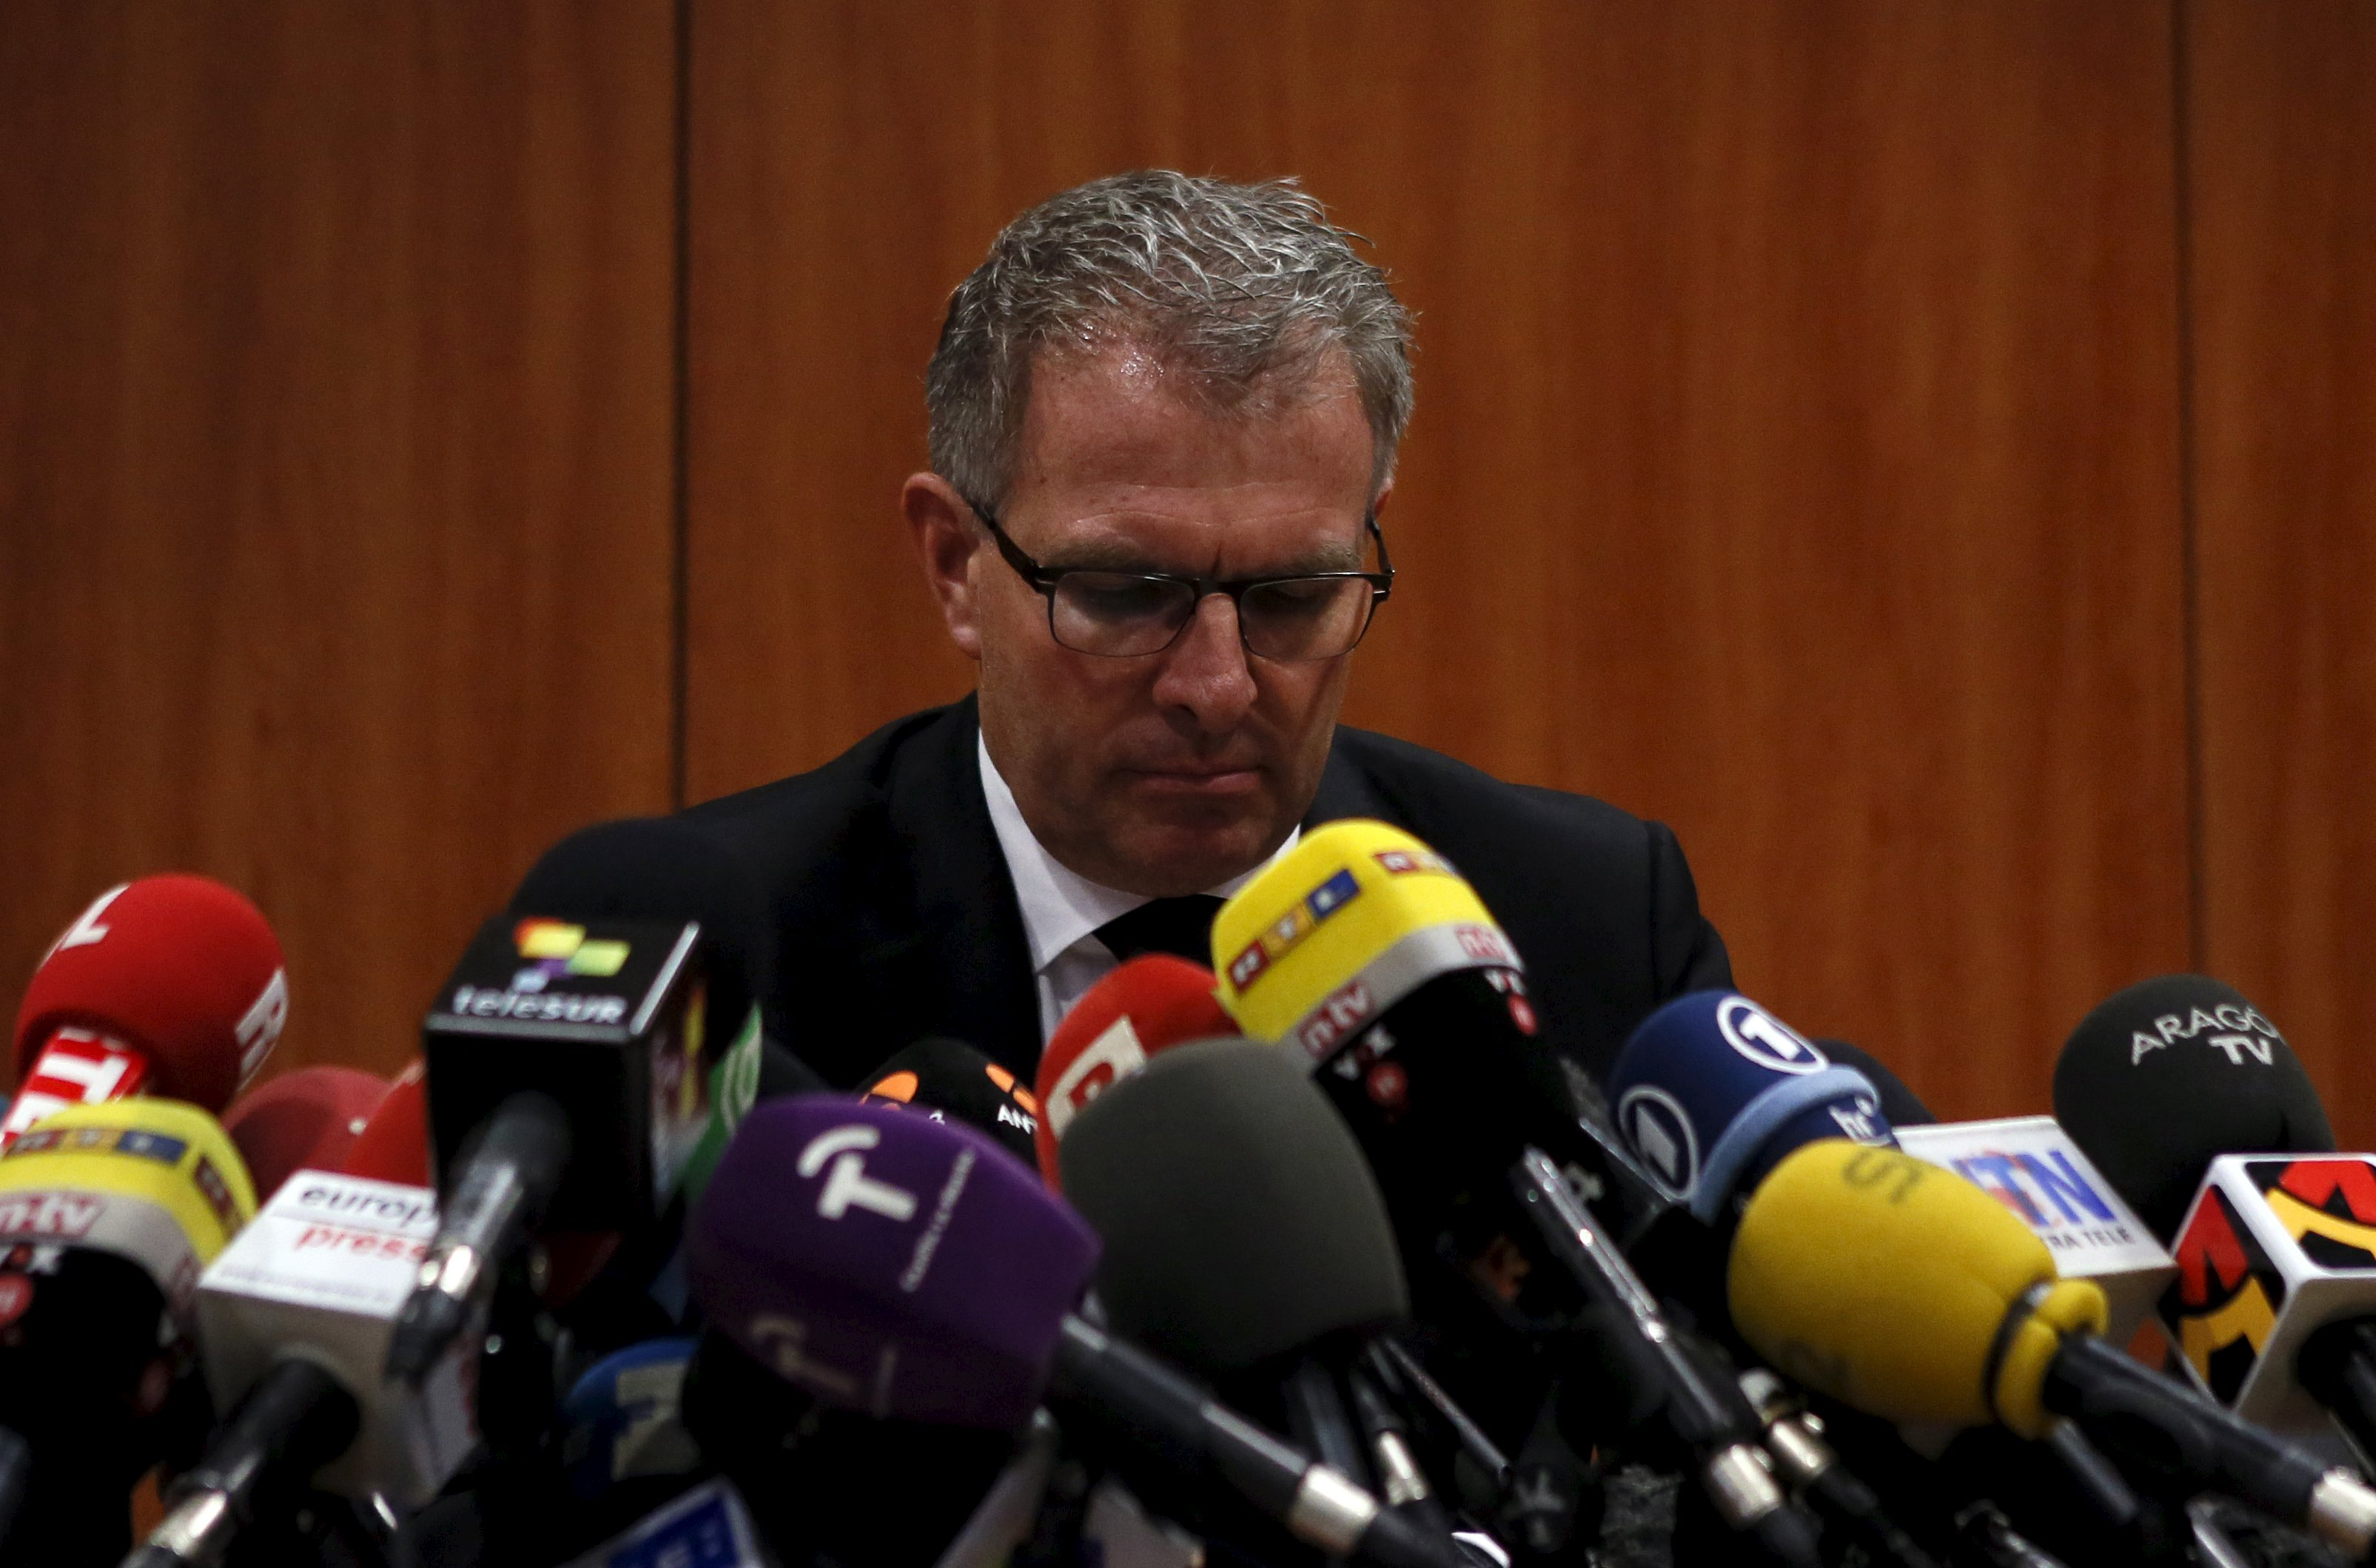 Lufthansa Chief Executive Carsten Spohr reacts during a news conference at Barcelona's El Prat airport Wednesday. Investigators have extracted cockpit voice recordings from one of the black boxes of the Germanwings Airbus plane that smashed into the Alps and expect to have a read-out of their content within days, an official said on Wednesday. The New York Times meanwhile reported that there are sound indications that one of the pilots was locked out of the cockpit, desperately trying to get back in, when the jet went down. | REUTERS